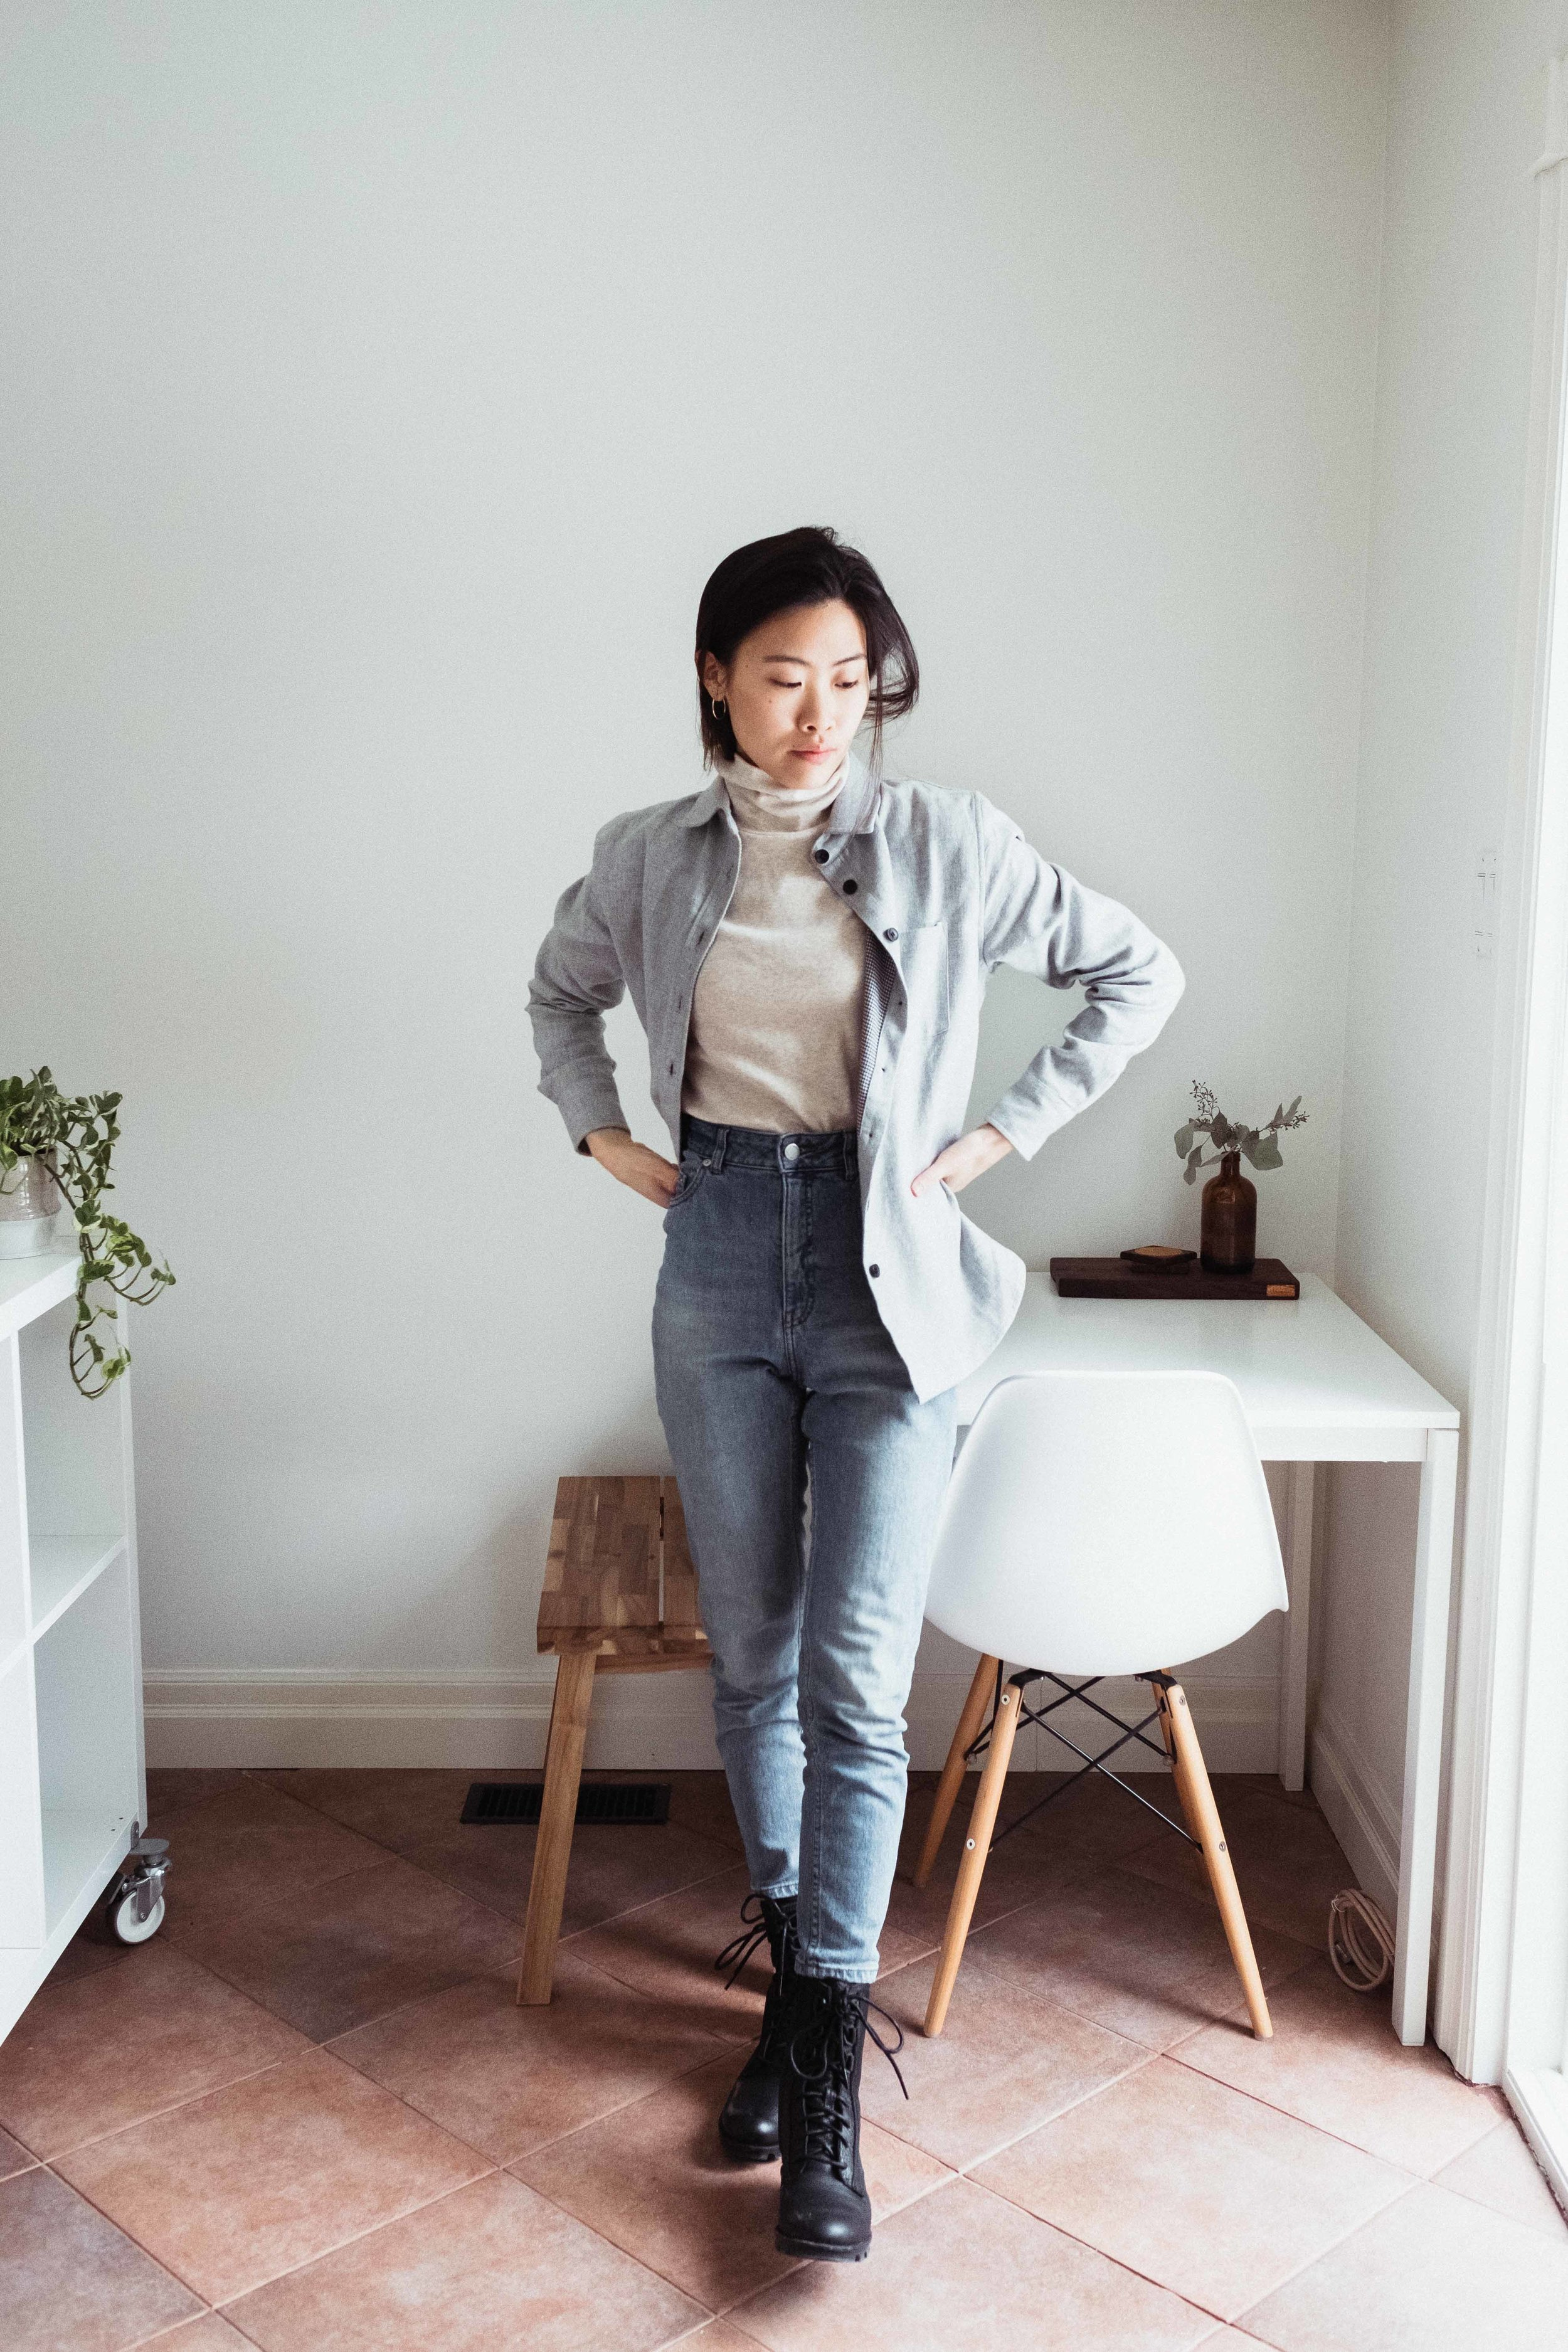 I've styled an all-cotton outfit, including my jeans! I'm wearing my  Tradlands  Reyes Flannel, a Muji Turtleneck, and my Cheap Monday mom jeans.